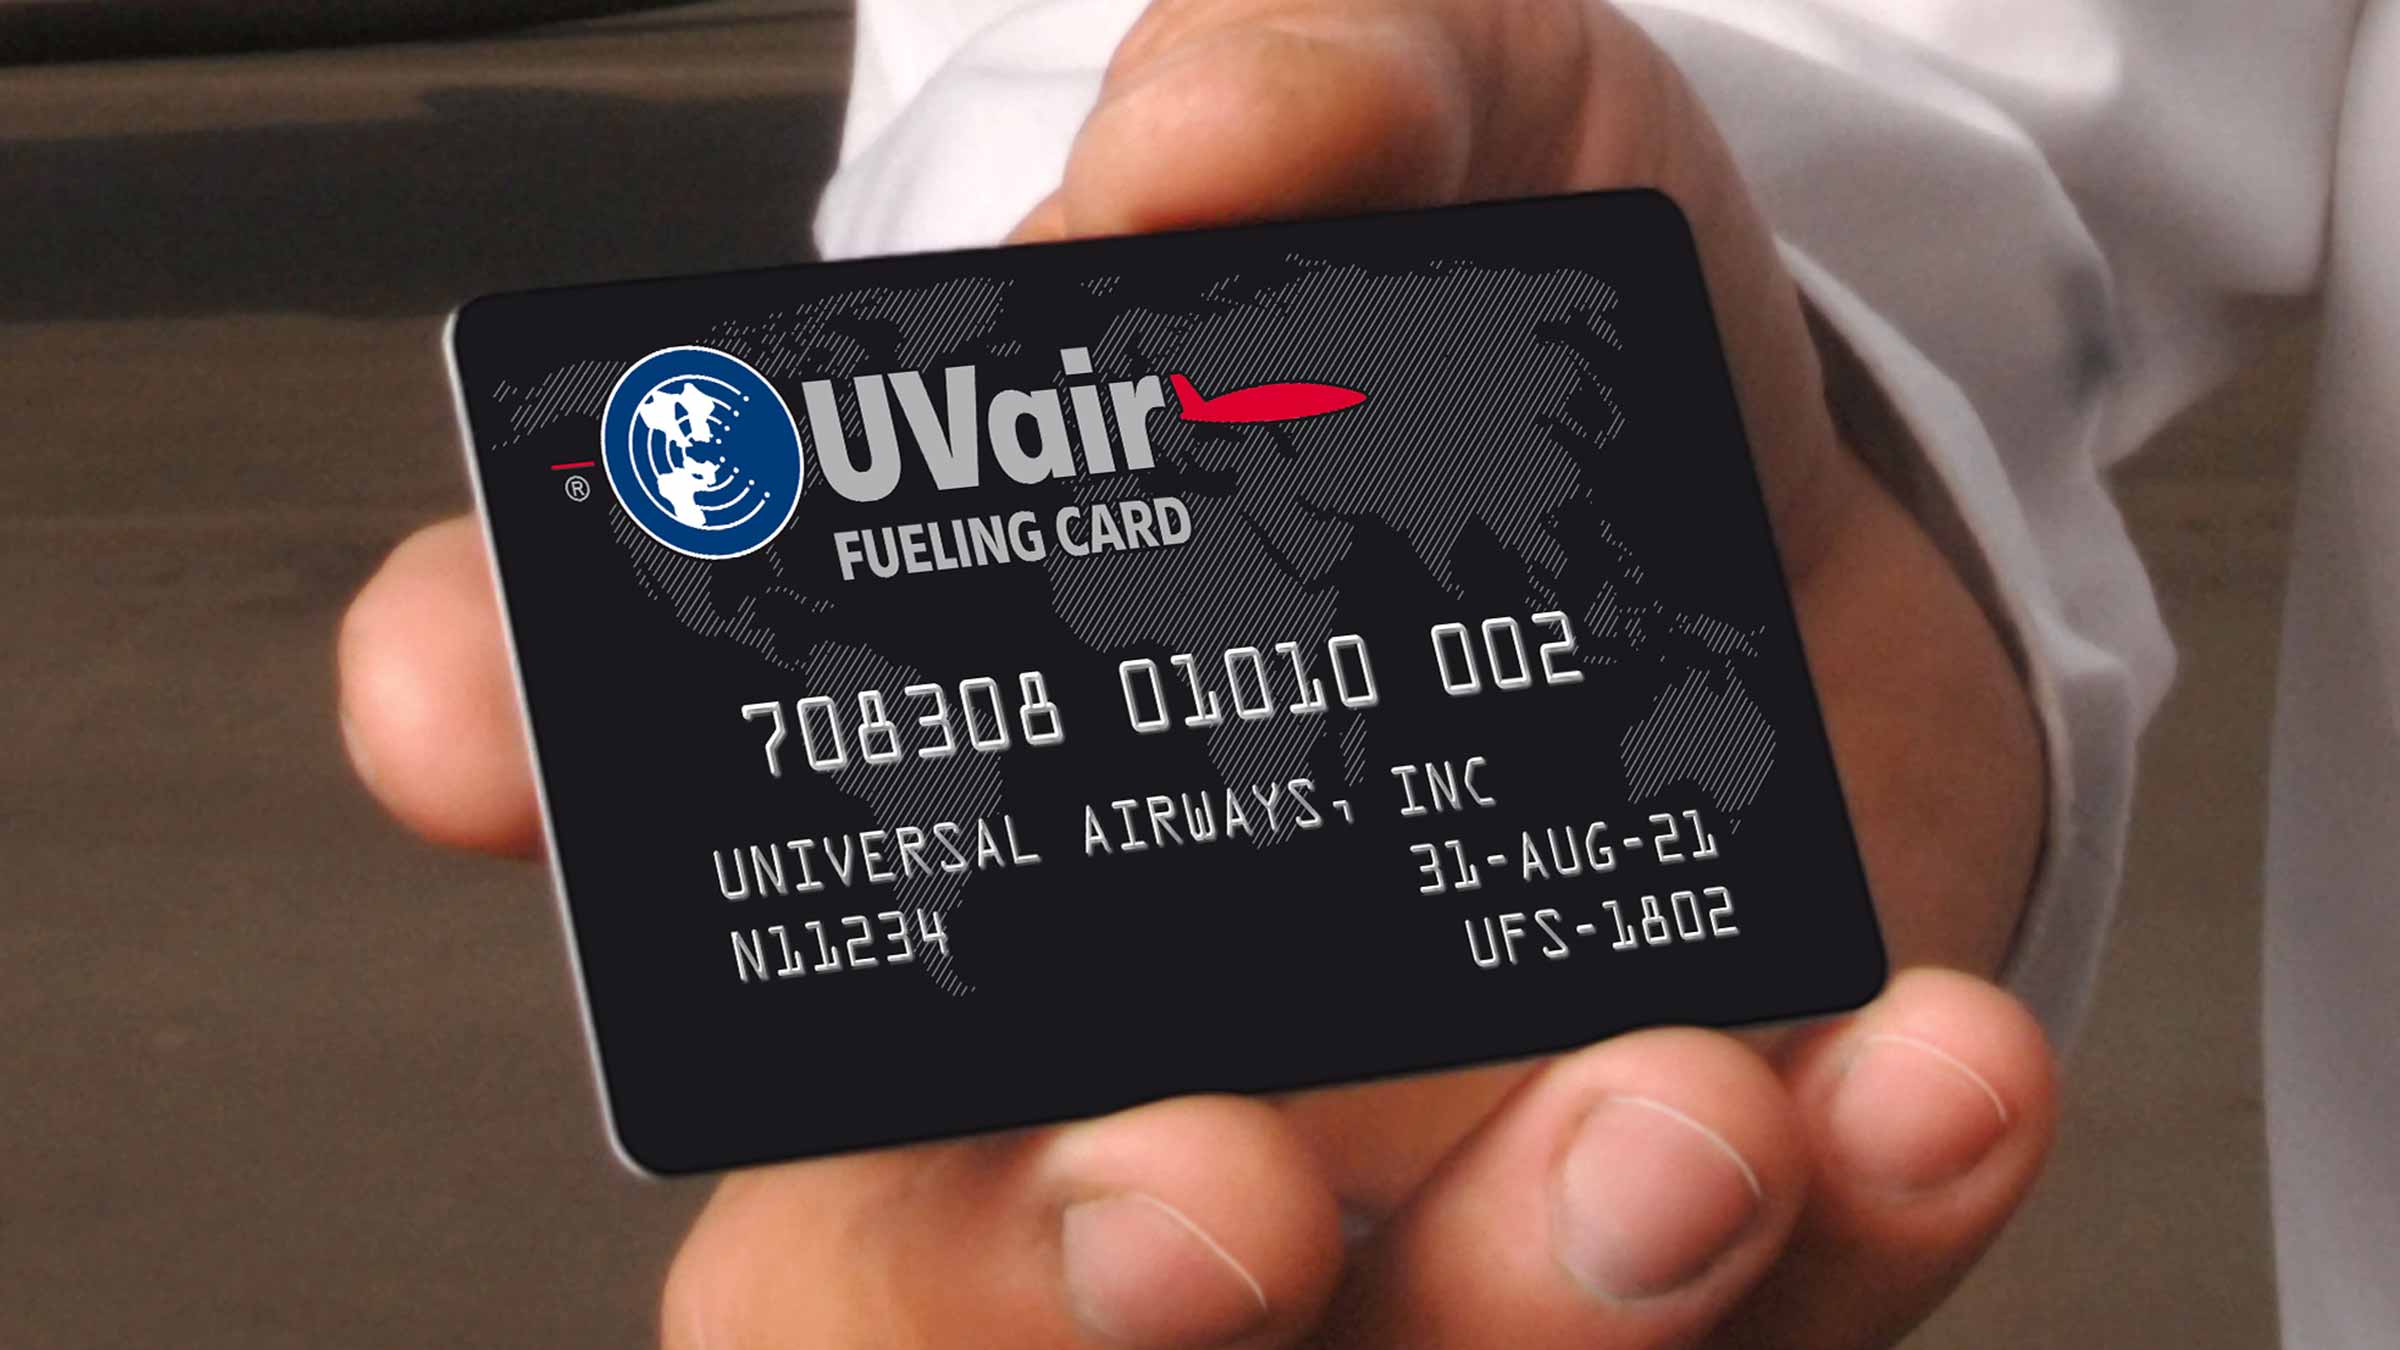 universal aviation fuel card program jet a